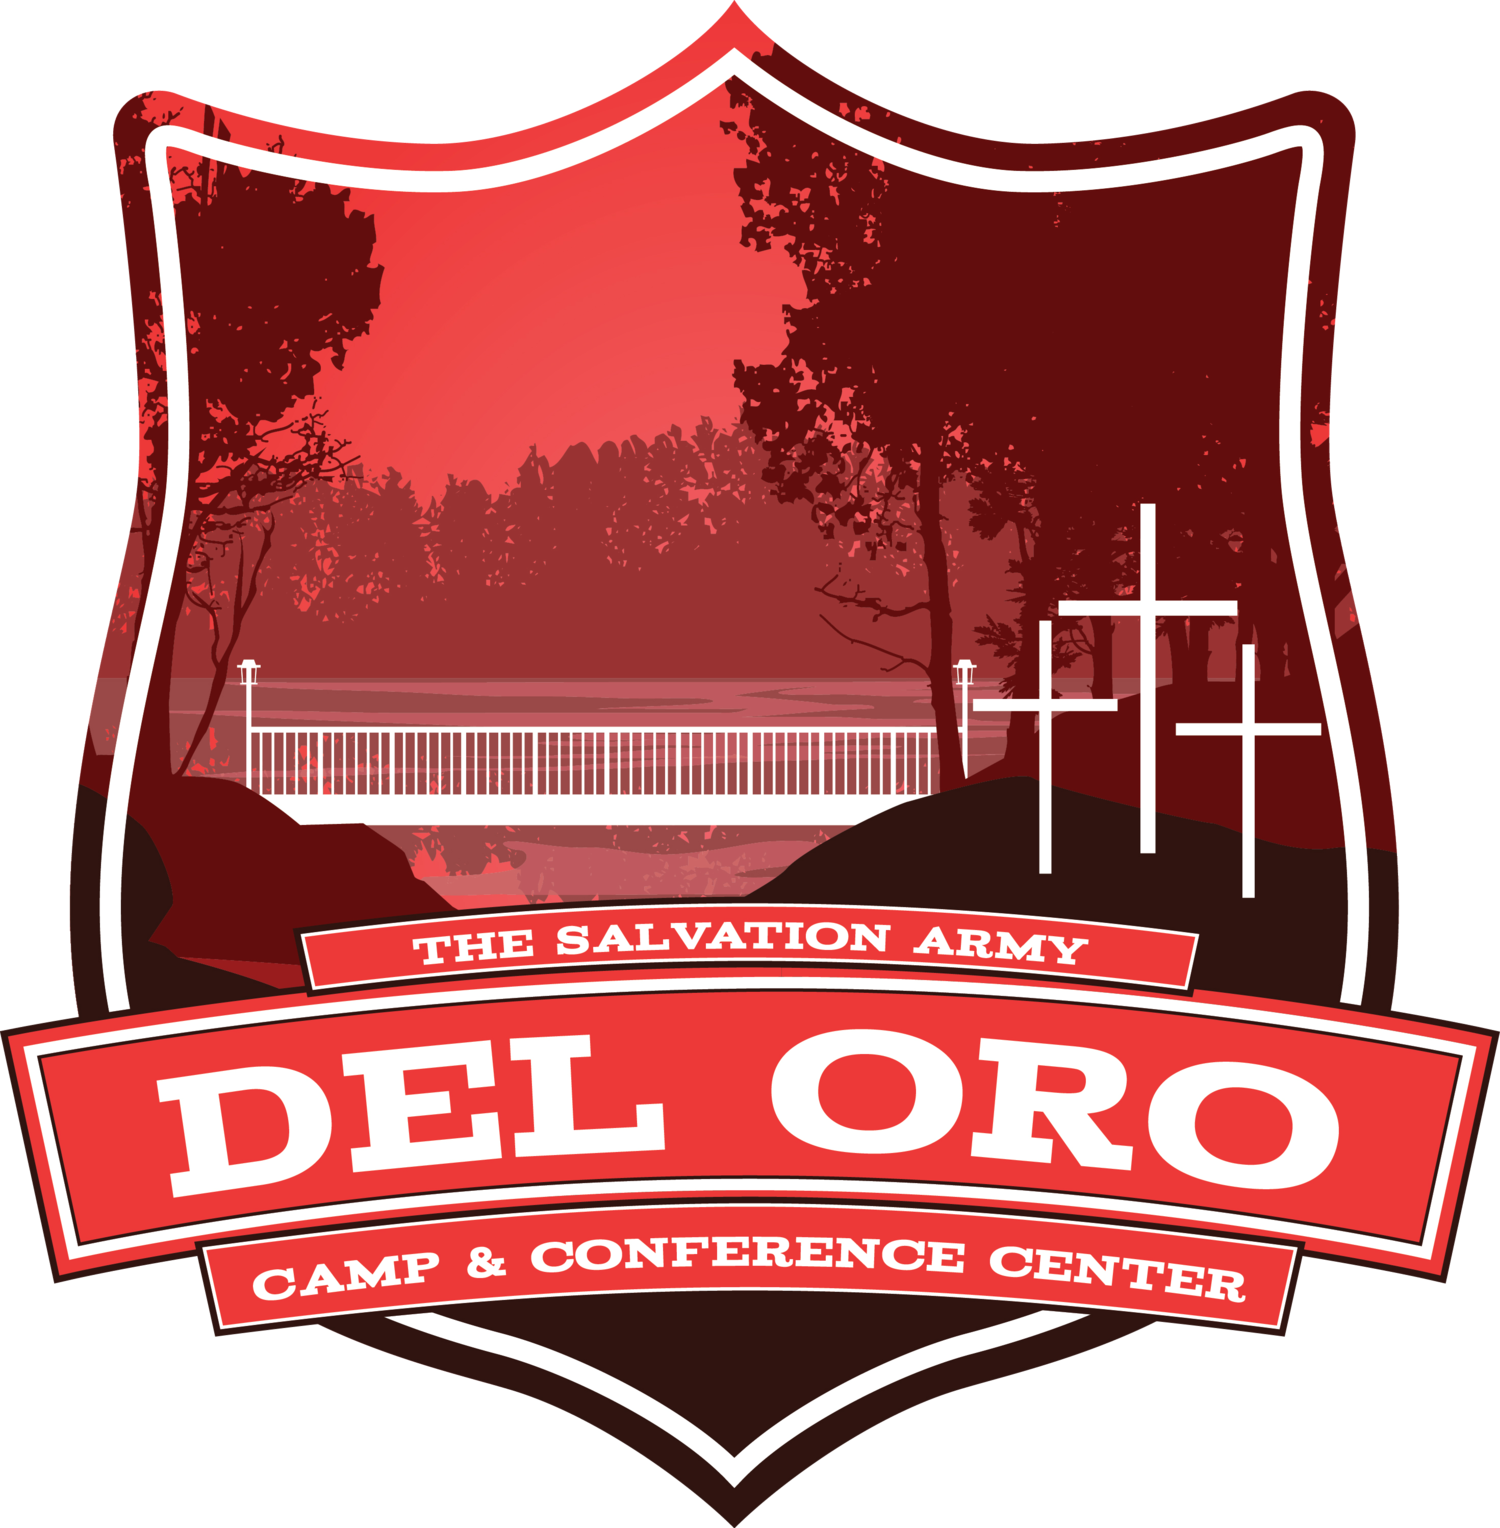 Del Oro Camp & Conference Center